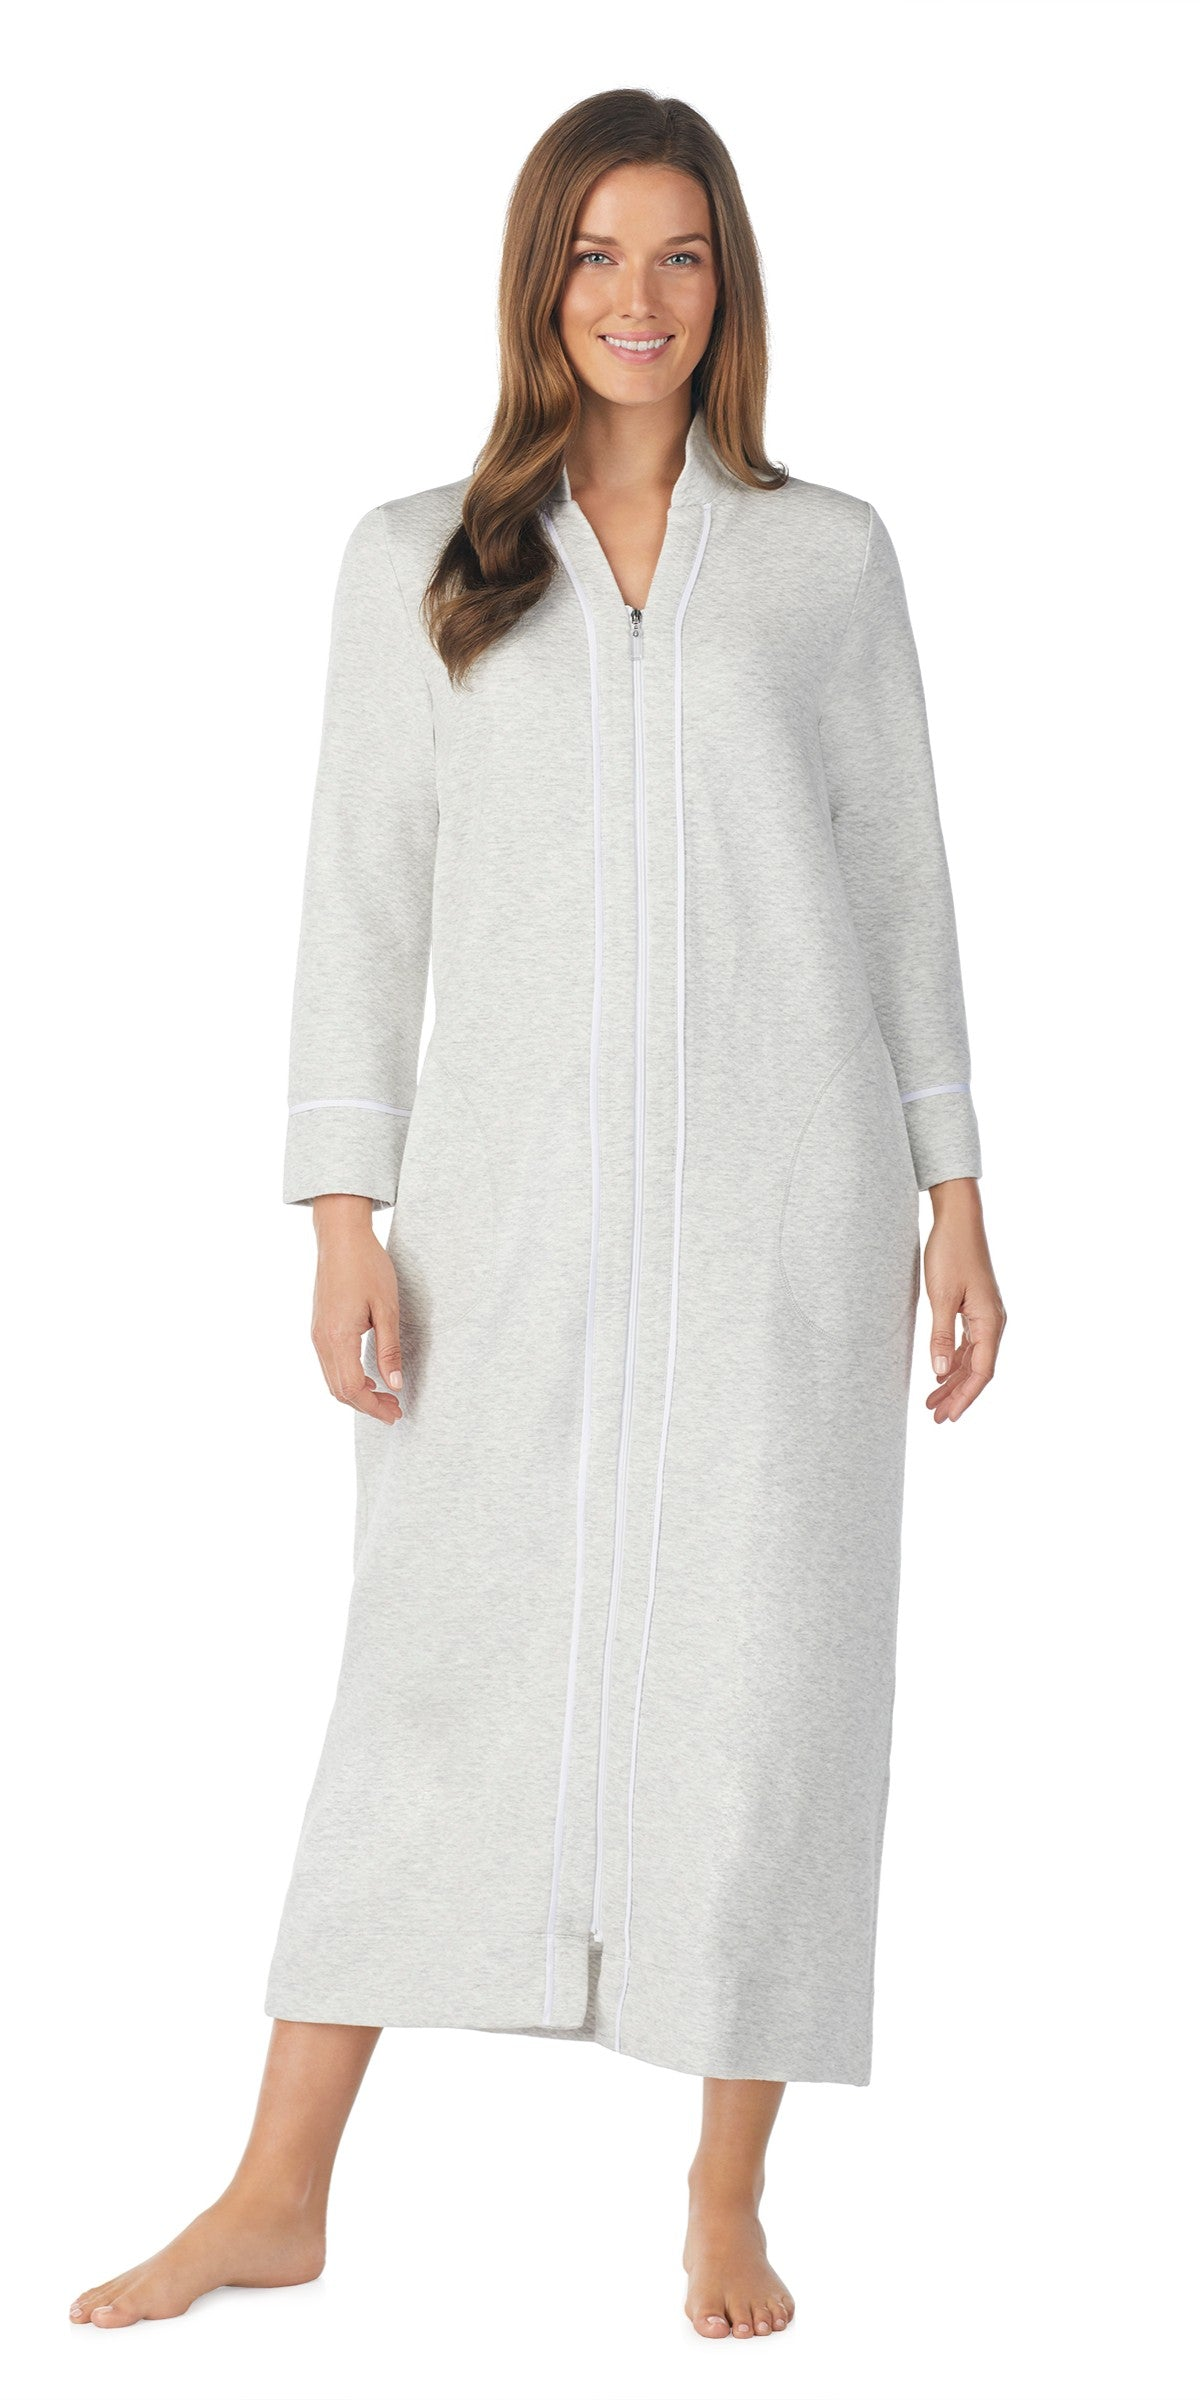 HEATHER GREY DIAMOND QUILT LONG ZIP ROBE